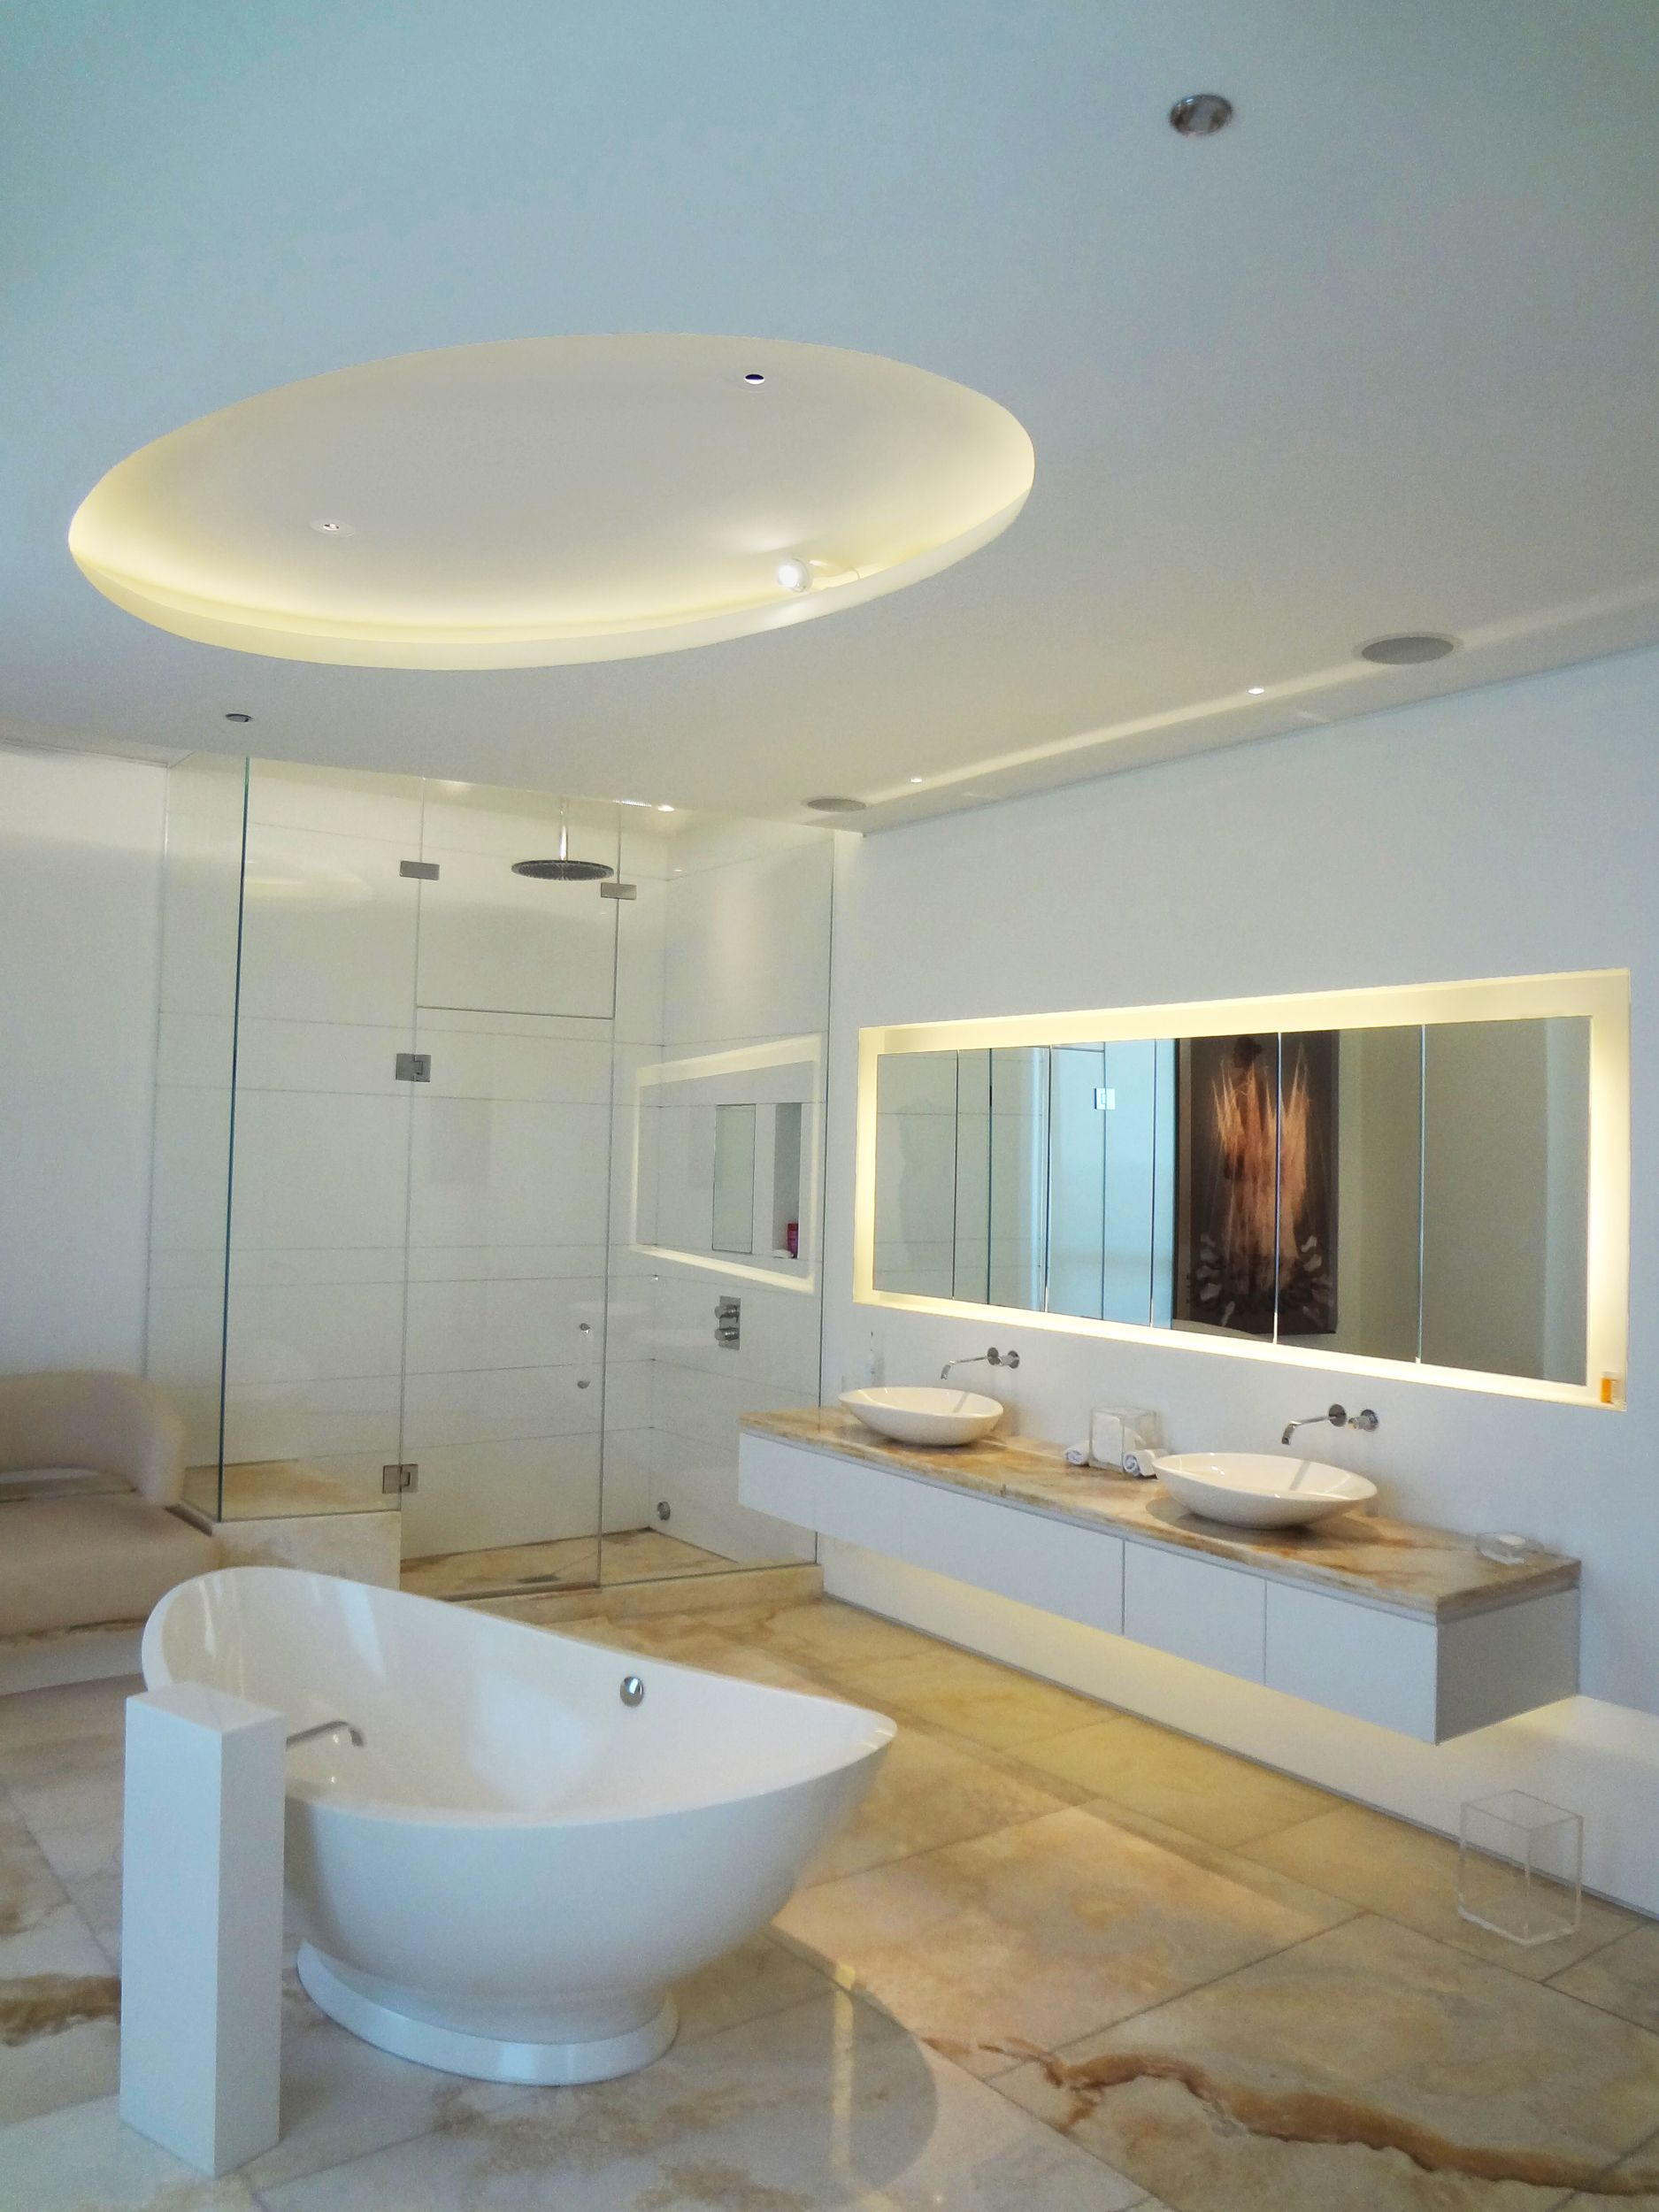 coved ceiling - Google Search | For the Home | Pinterest | Bathroom ...